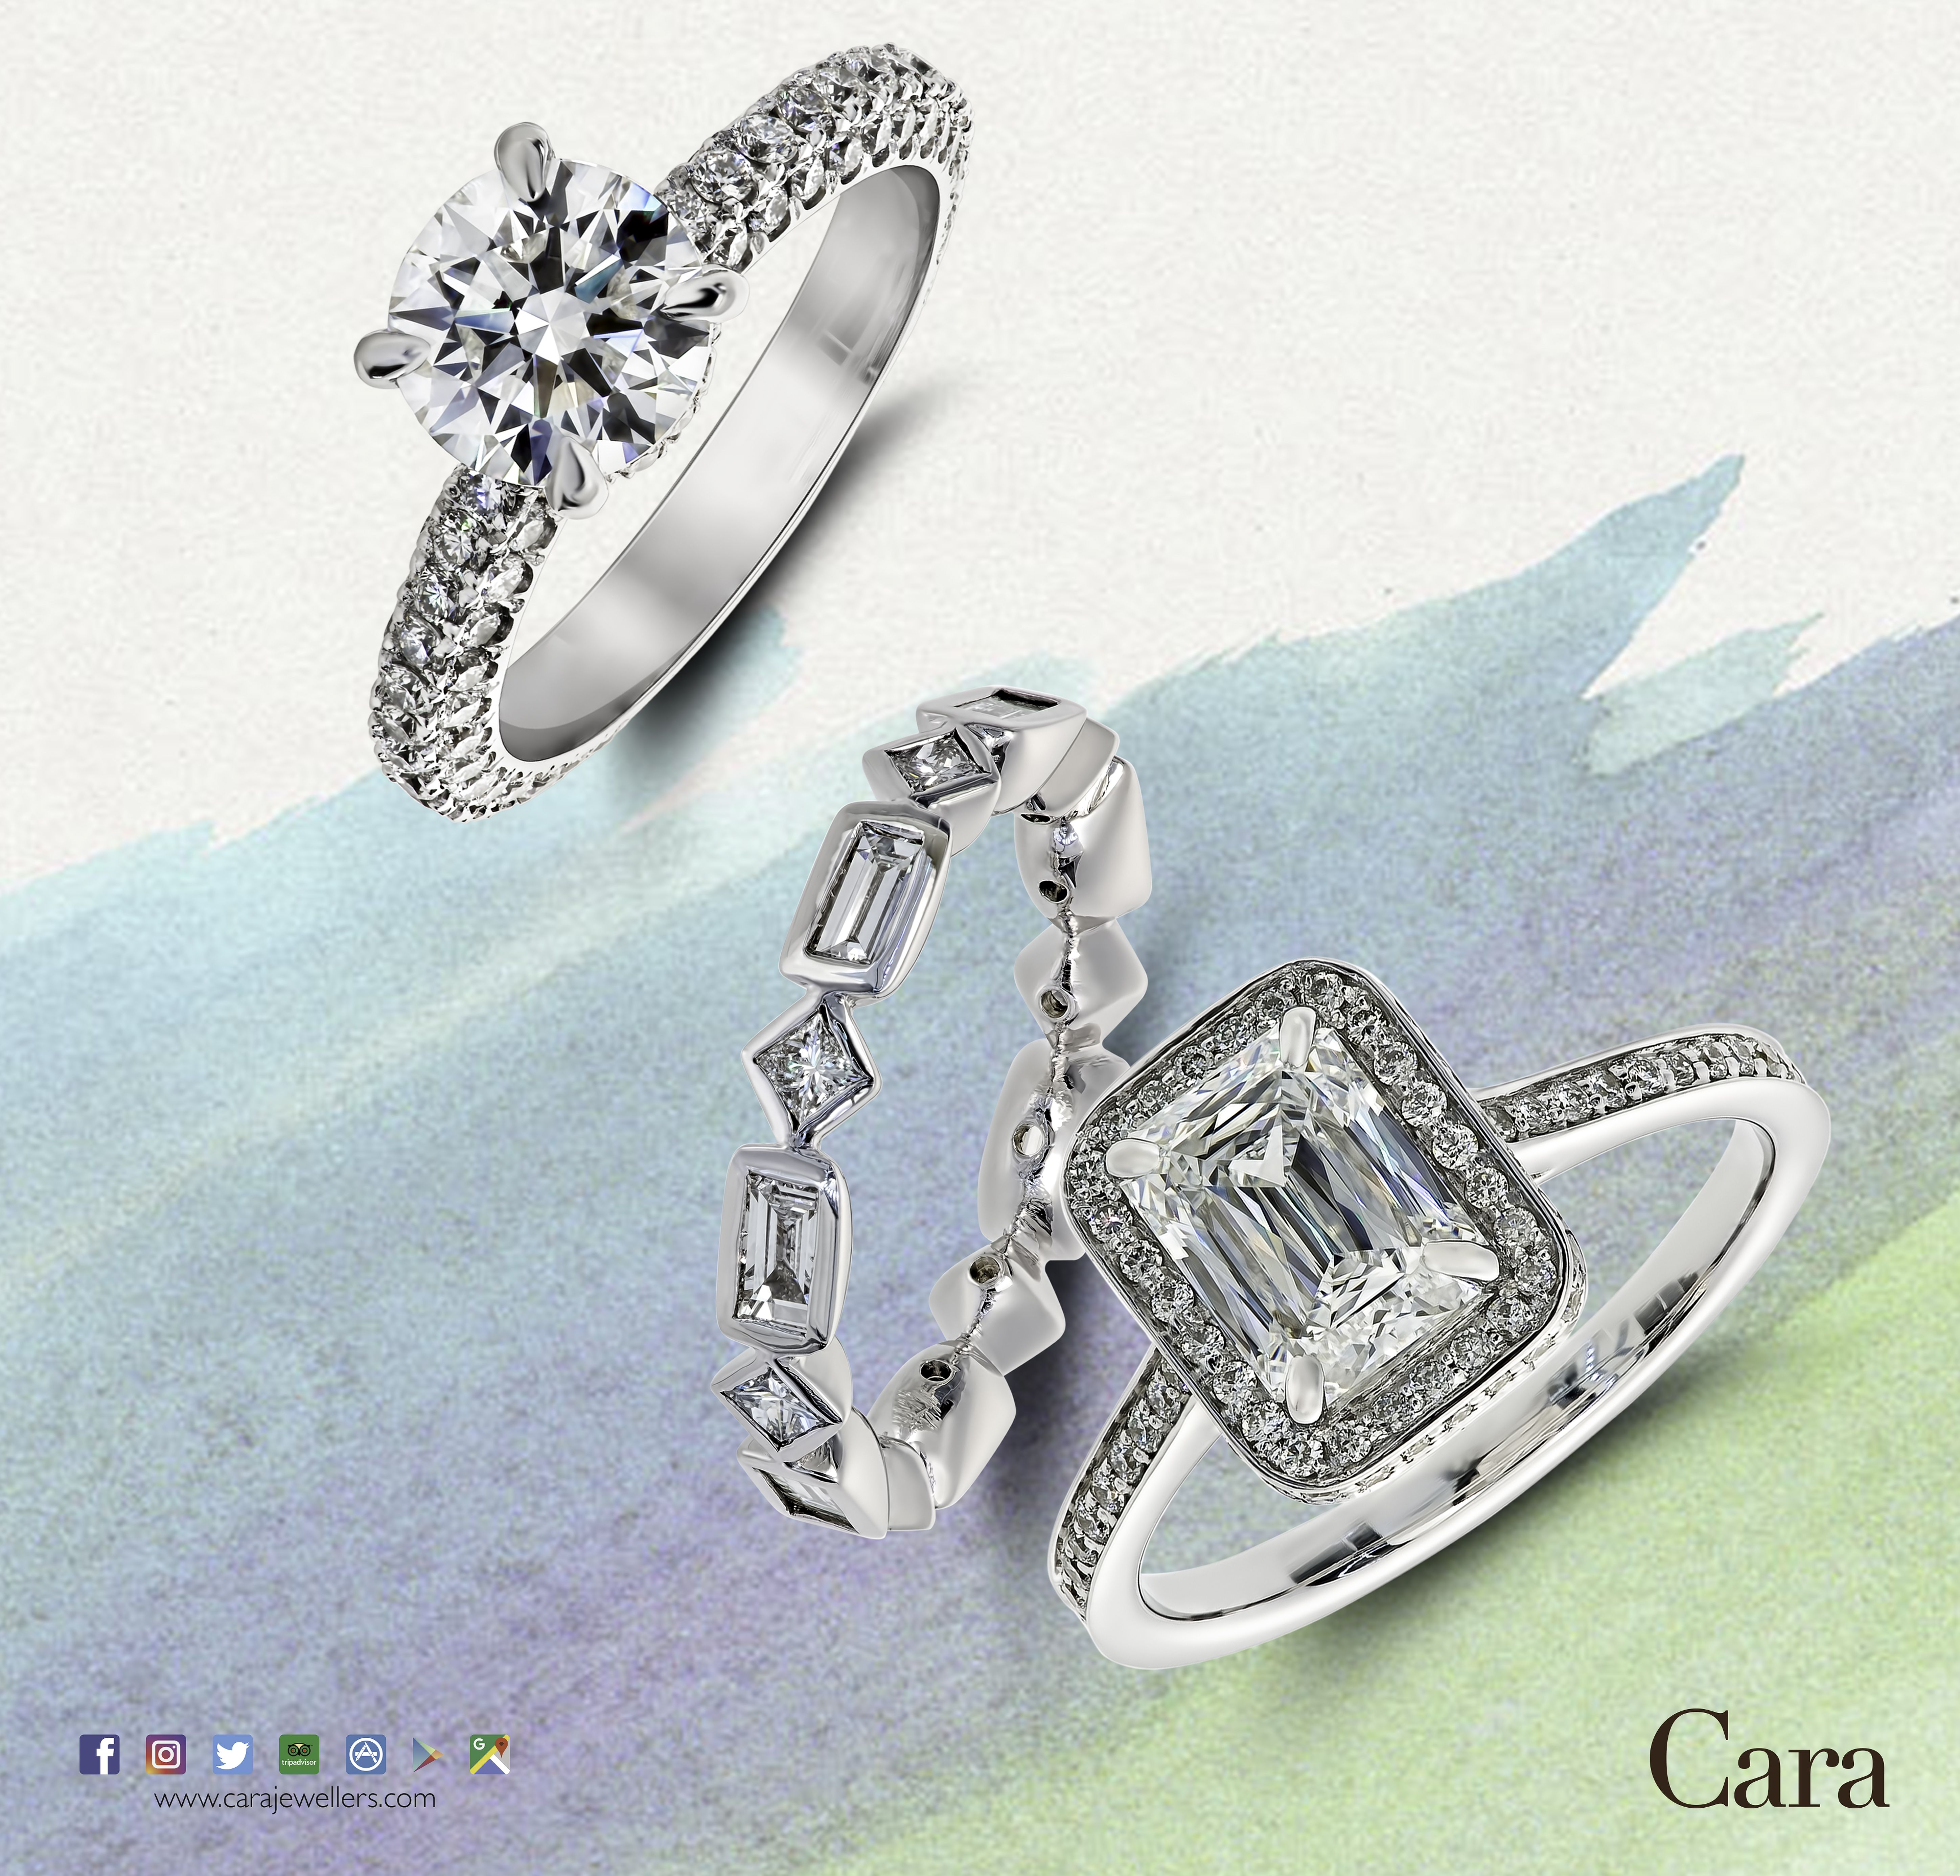 Pick any or all three from cara jewellers an round brilliant cut